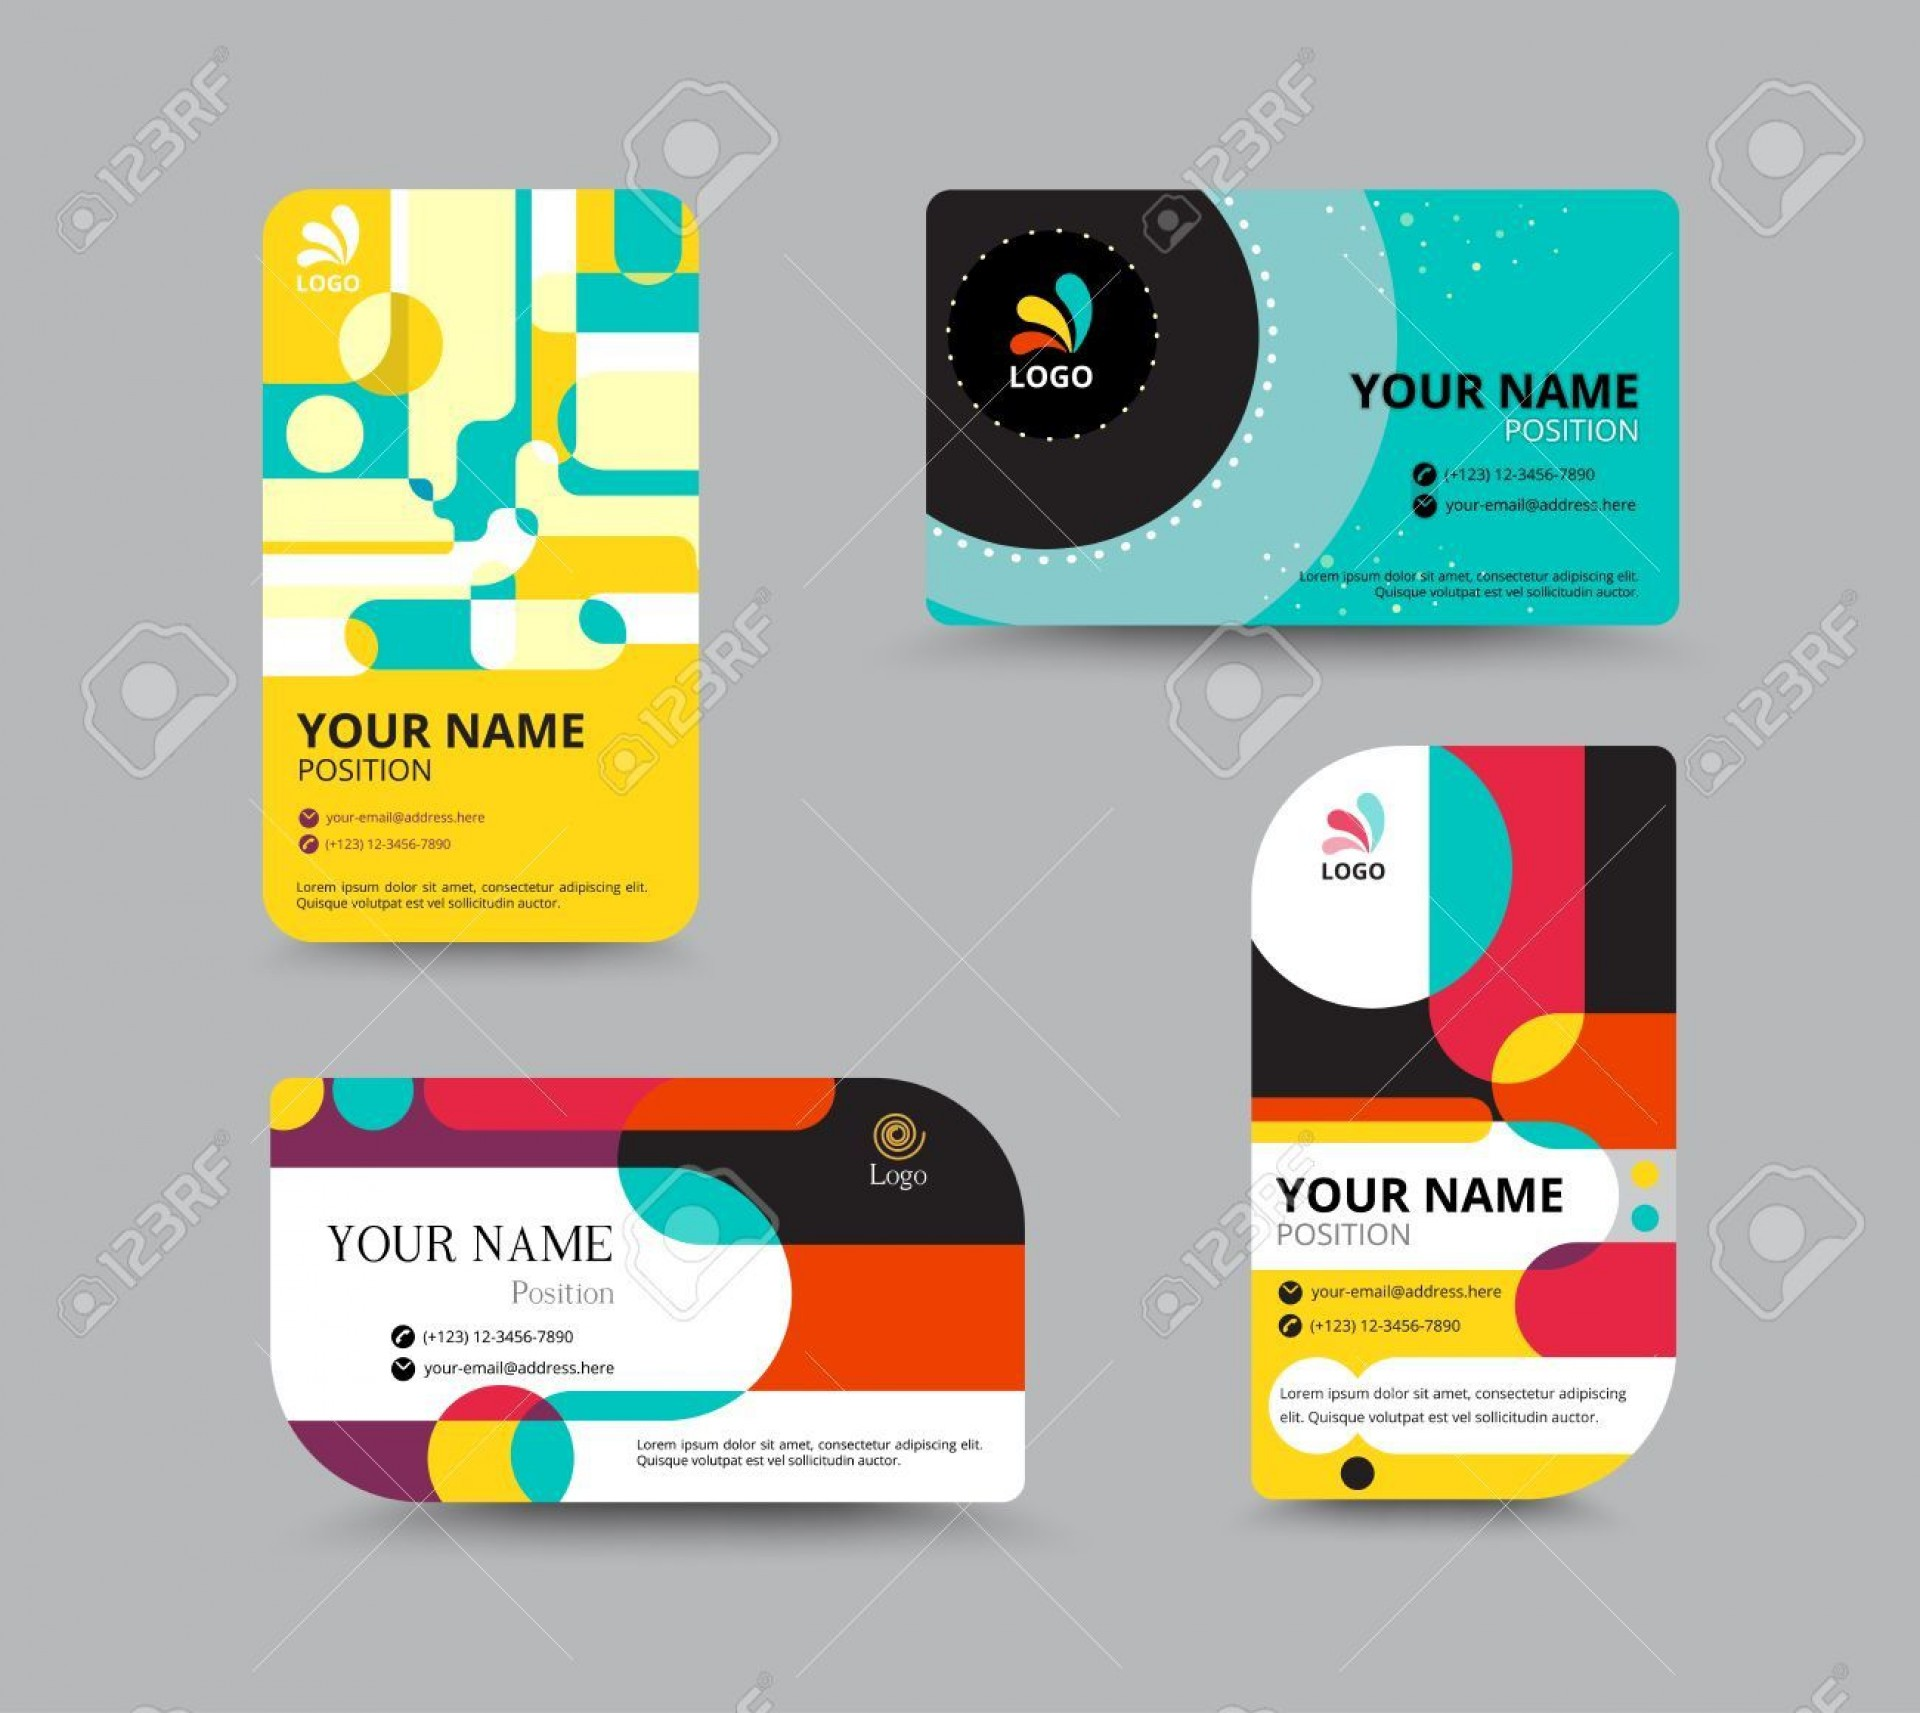 001 Simple Name Tag Design Template Inspiration  Free Download Psd1920